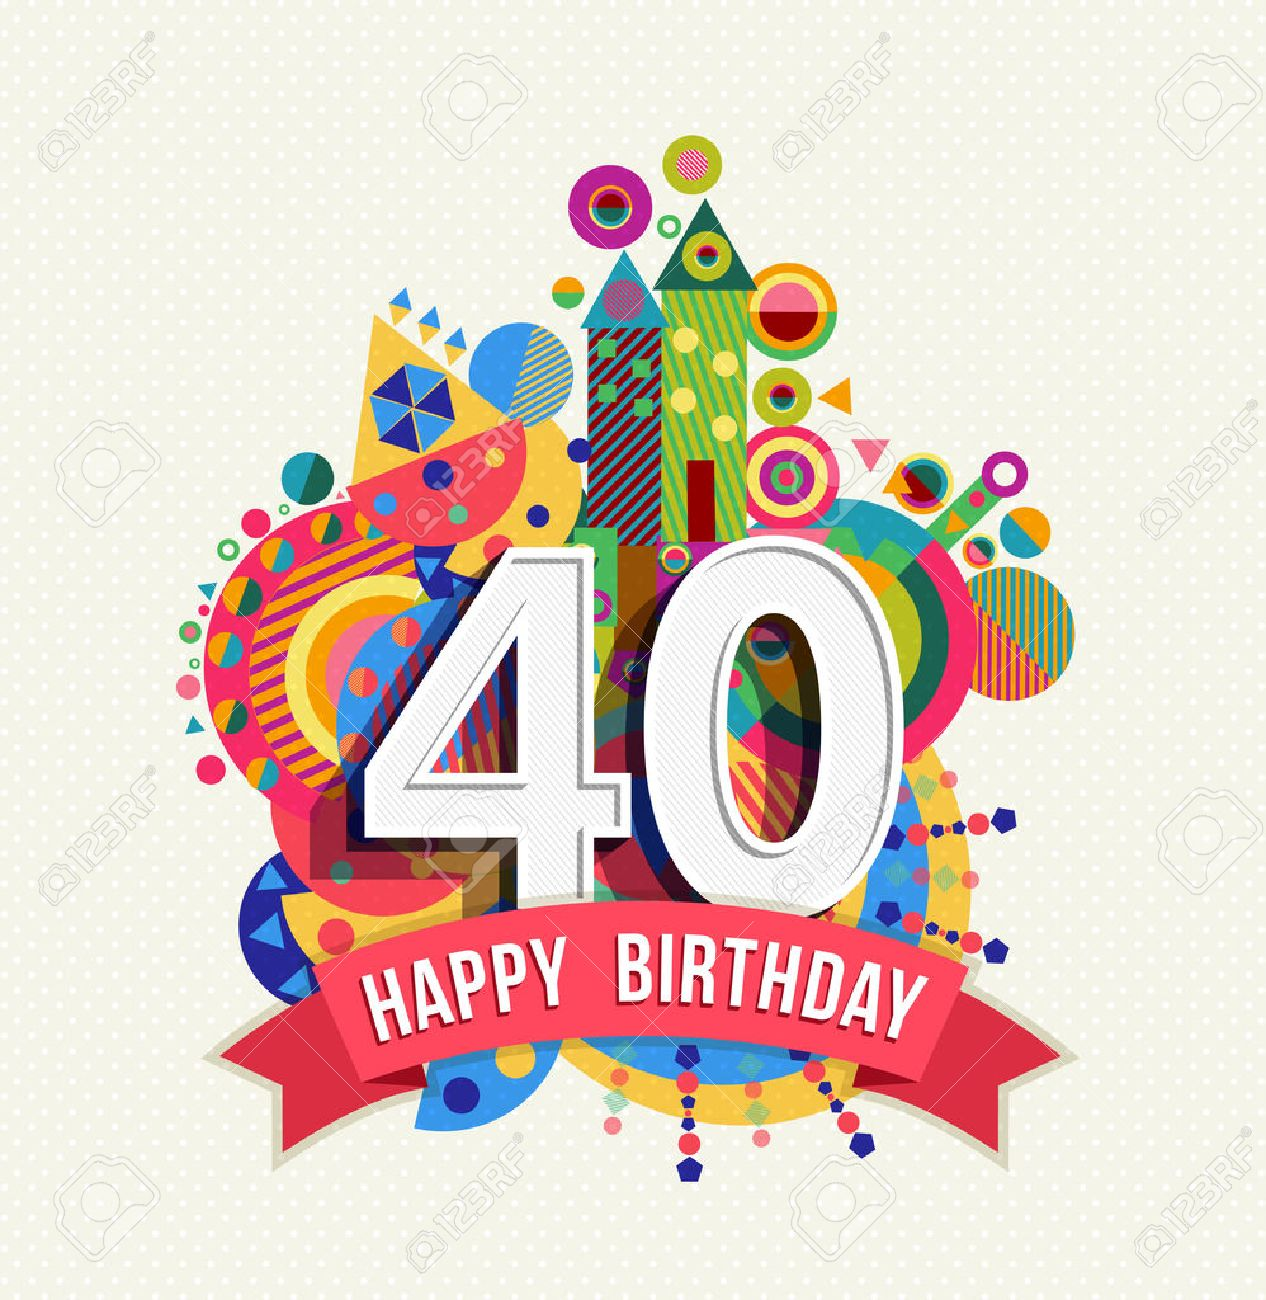 Happy Birthday forty 40 year fun celebration greeting card with number, text label and colorful geometry design. EPS10 vector. - 50199040